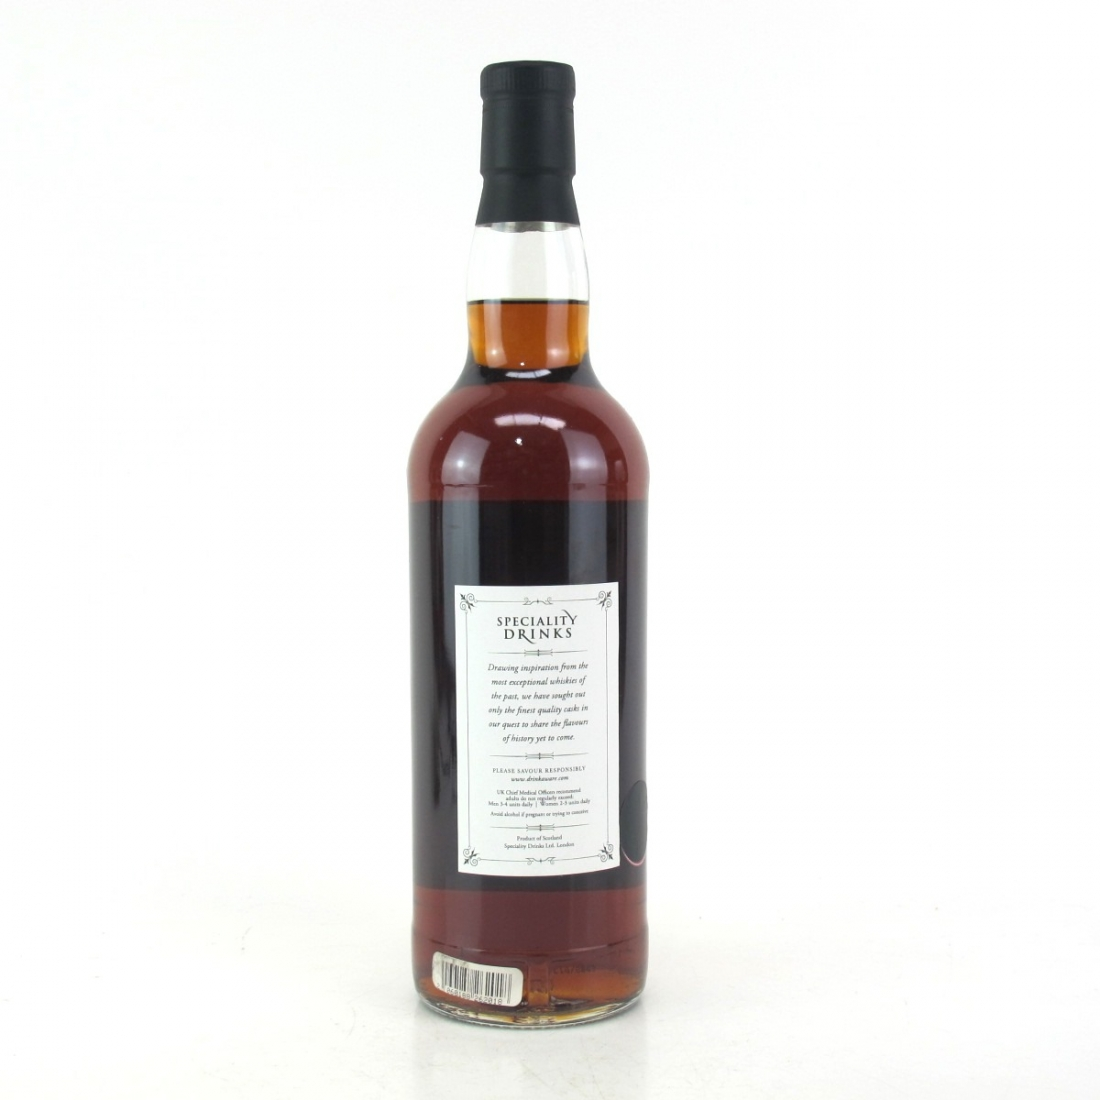 Clynelish 18 Year Old The Whisky Show 2014